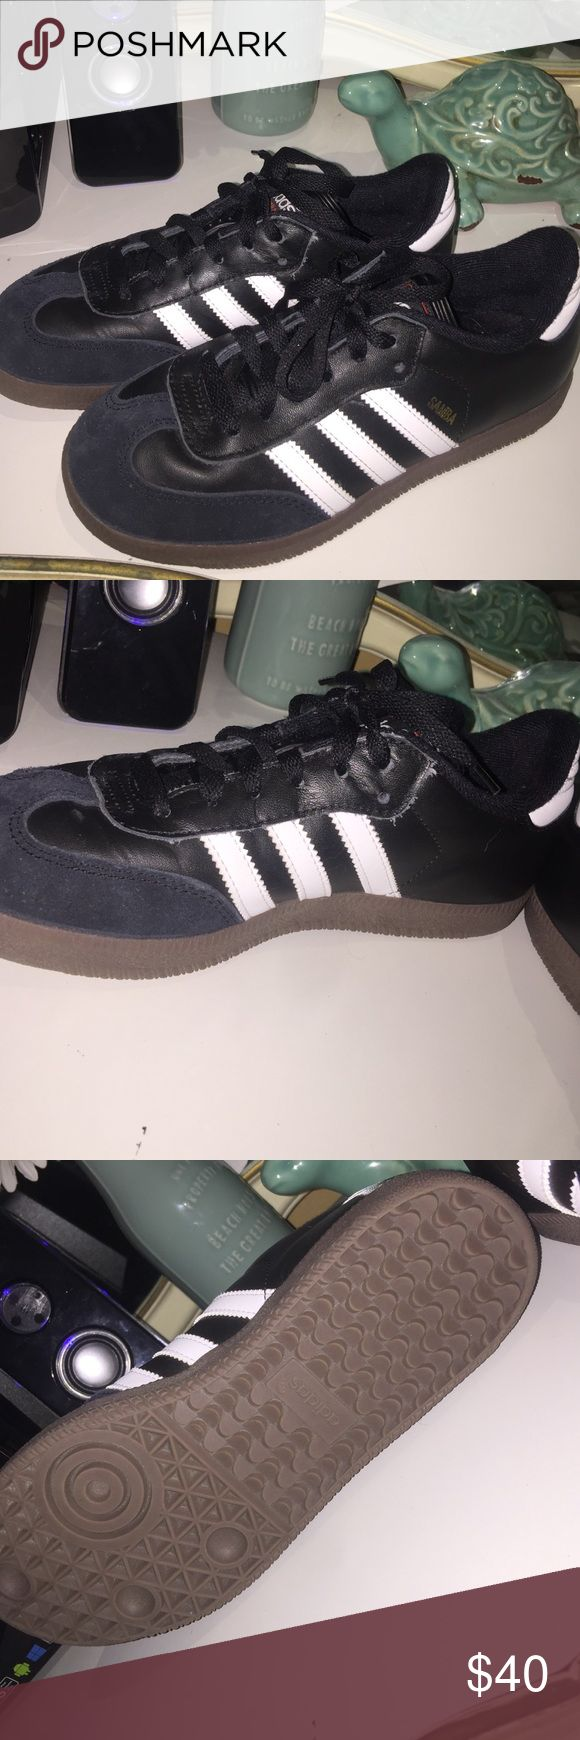 Adidas Samba Shoes -Adidas Samba Shoes -Black -Size Men's 4 1/2 -Only worn for a few indoor soccer games, in perfect condition  Open to offers on products over $10 No trades please 💘 Adidas Shoes Athletic Shoes